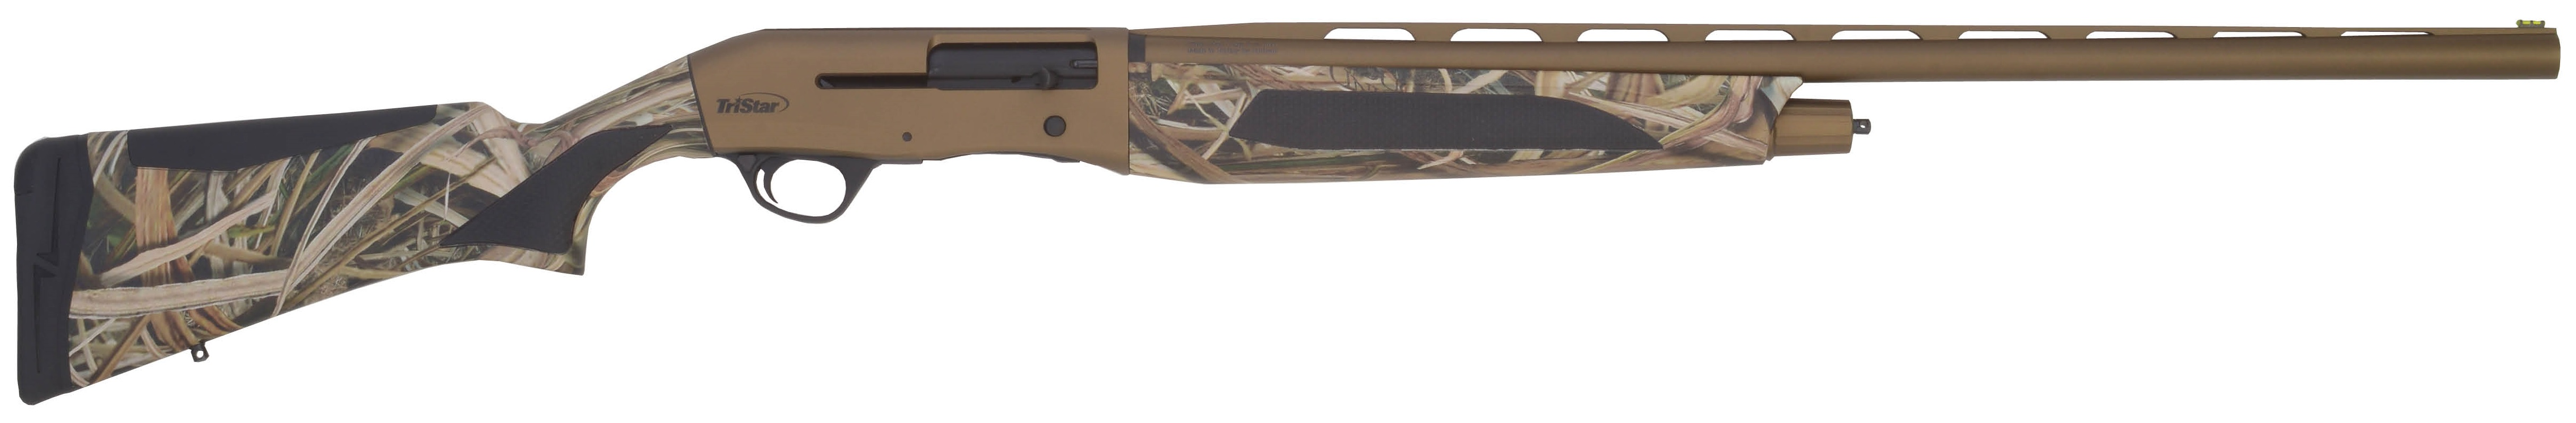 TriStar Sporting Arms Viper Max Camo 12 Gauge